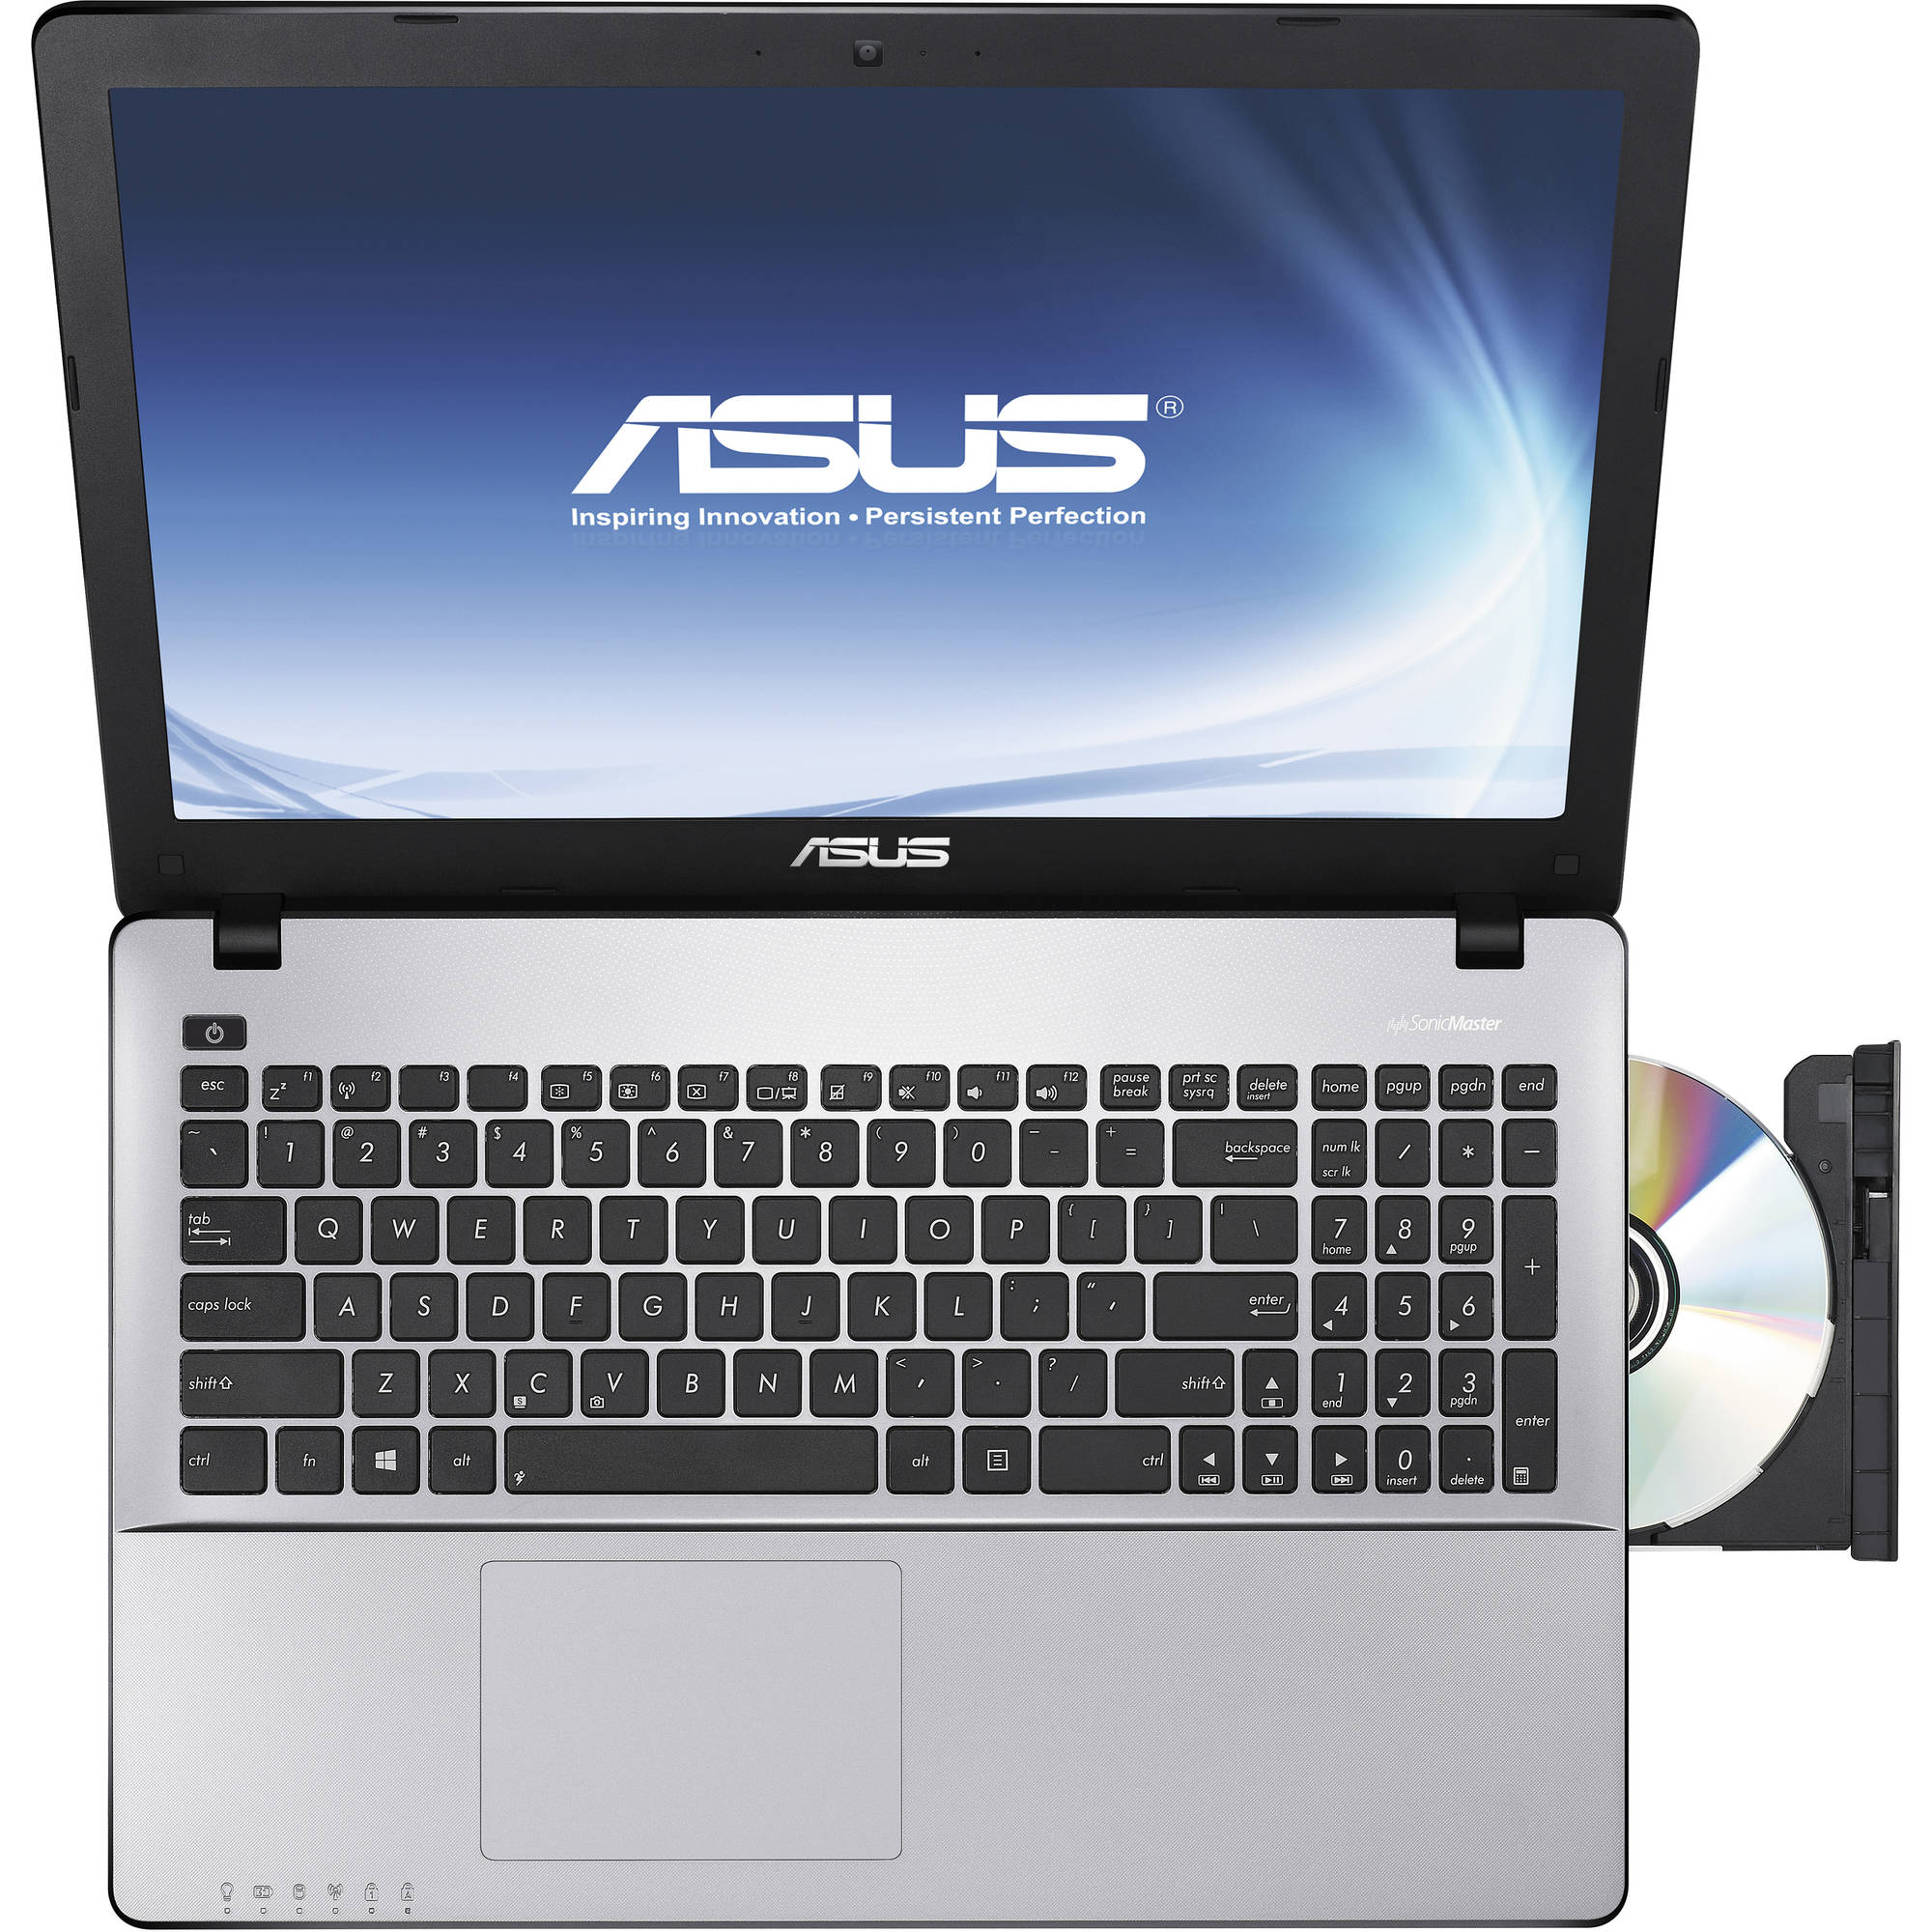 Manufacturer Refurbished Asus X550jk Dh71 15 6 Laptop I7 4710hq